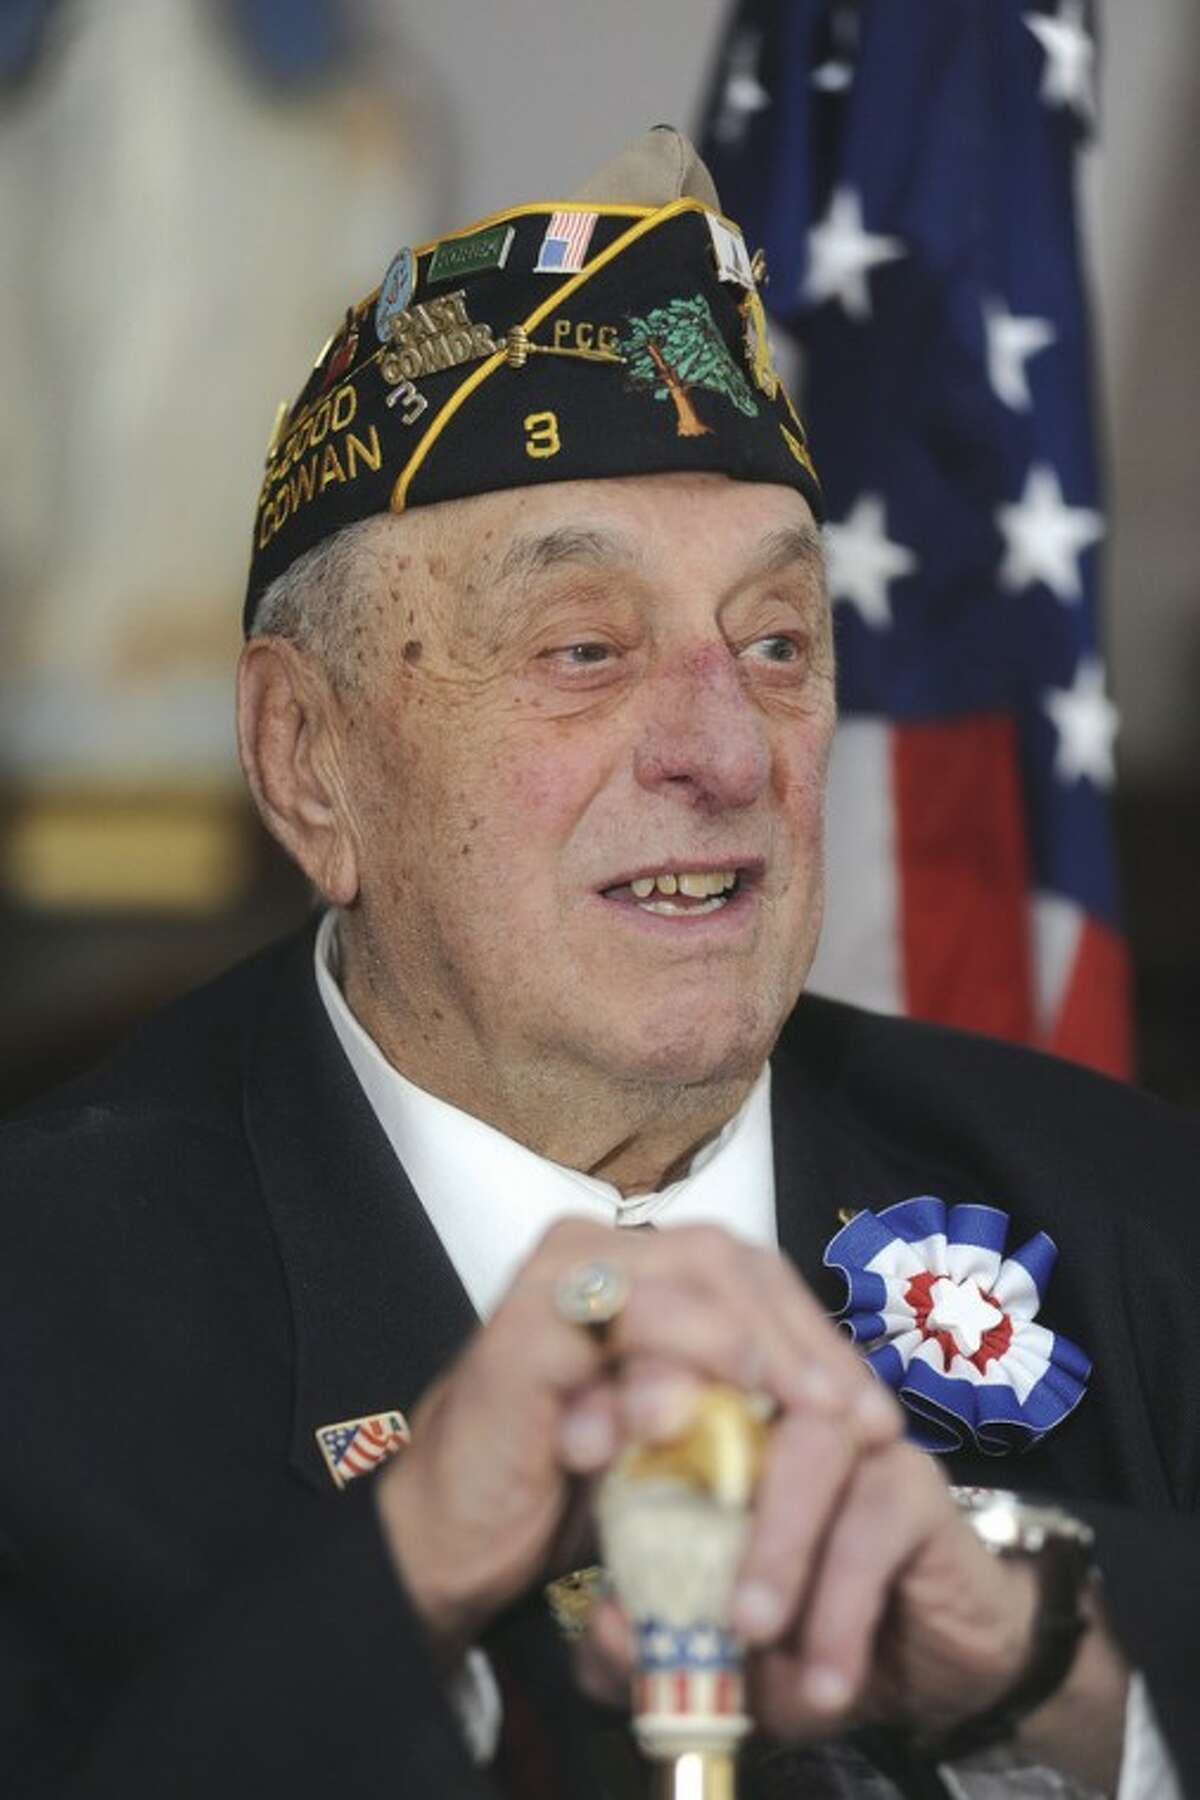 Hour photo / Matthew Vinci Stamford resident Carmine Vaccaro at Smith House Monday in Stamford. He was inducted into the Connecticut Veterans Hall of Fame on Wednesday.